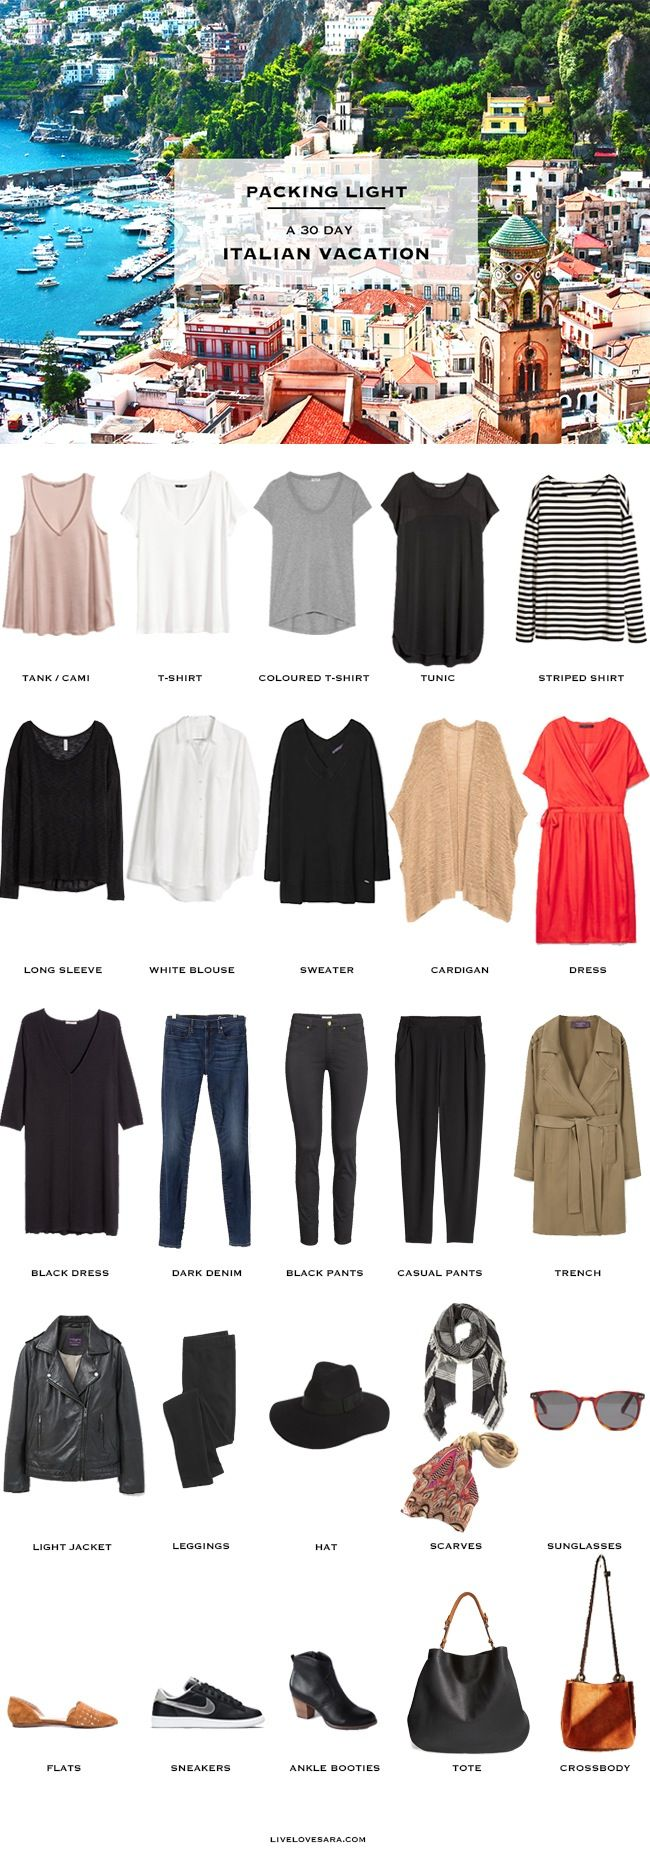 What to Pack for Italy - 30 Days Packing Light